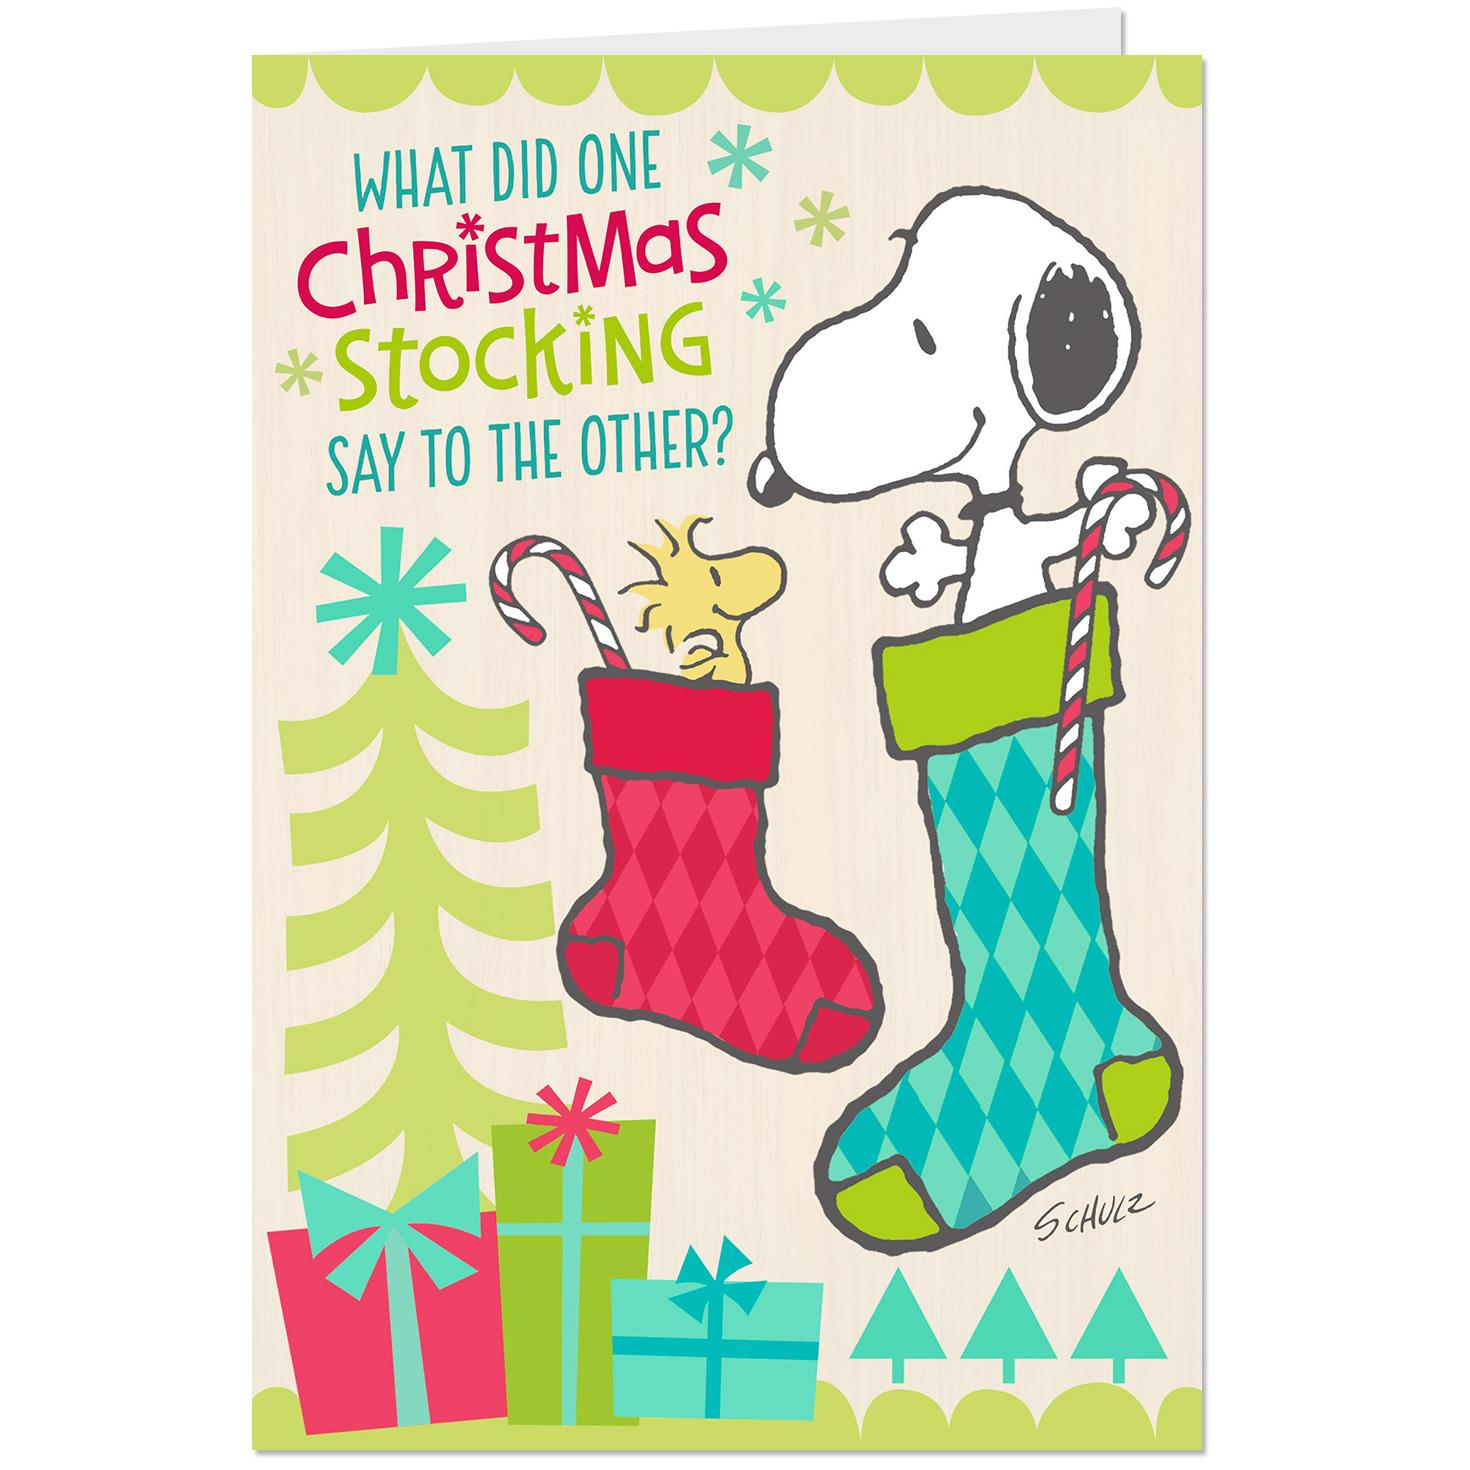 peanuts snoopy and woodstock stockings funny christmas card root source image jpg 1470x1470 funny christmas stocking - Funny Christmas Stockings